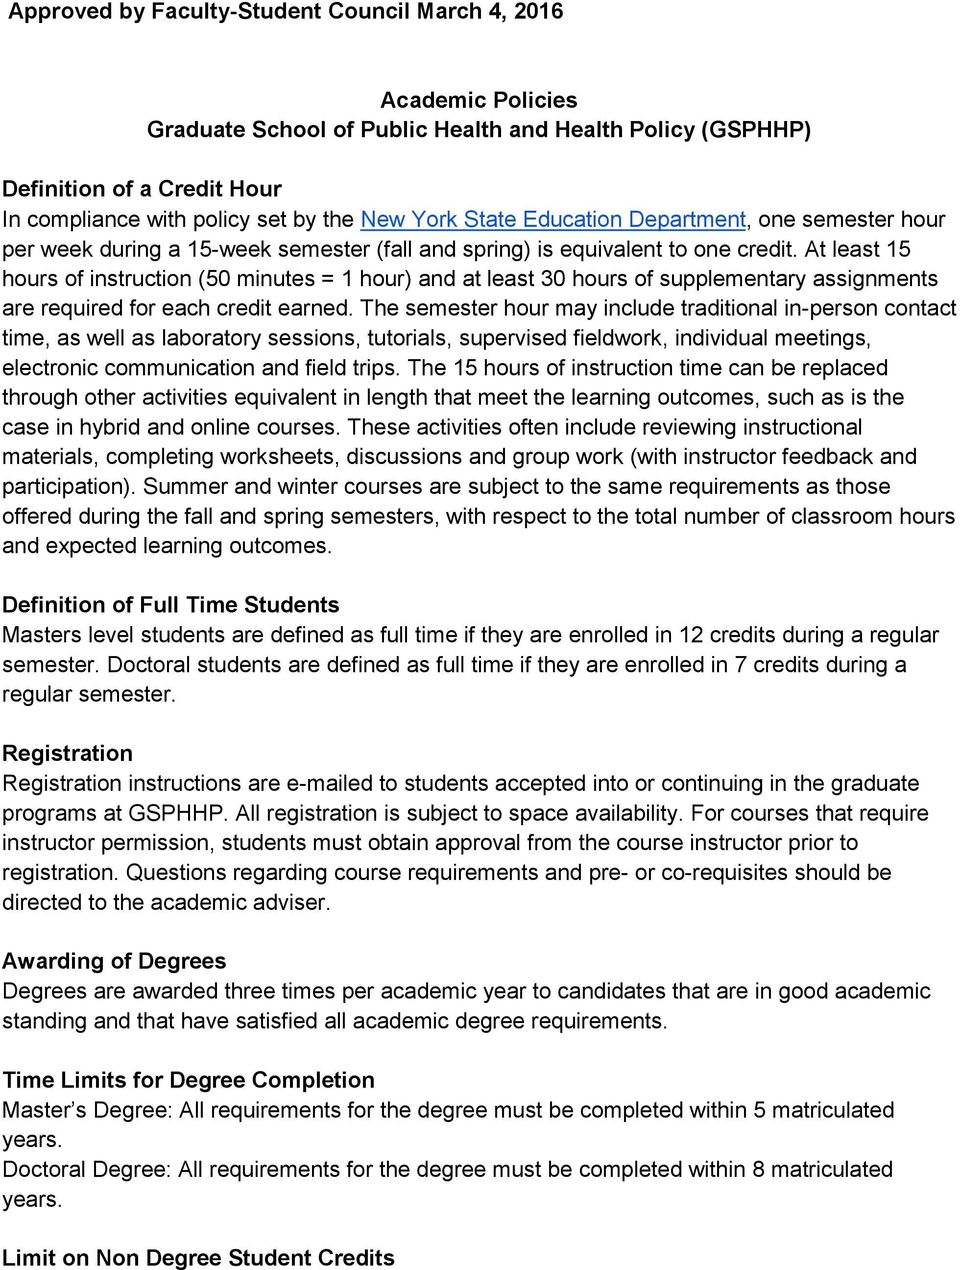 At least 15 hours of instruction (50 minutes = 1 hour) and at least 30 hours of supplementary assignments are required for each credit earned.